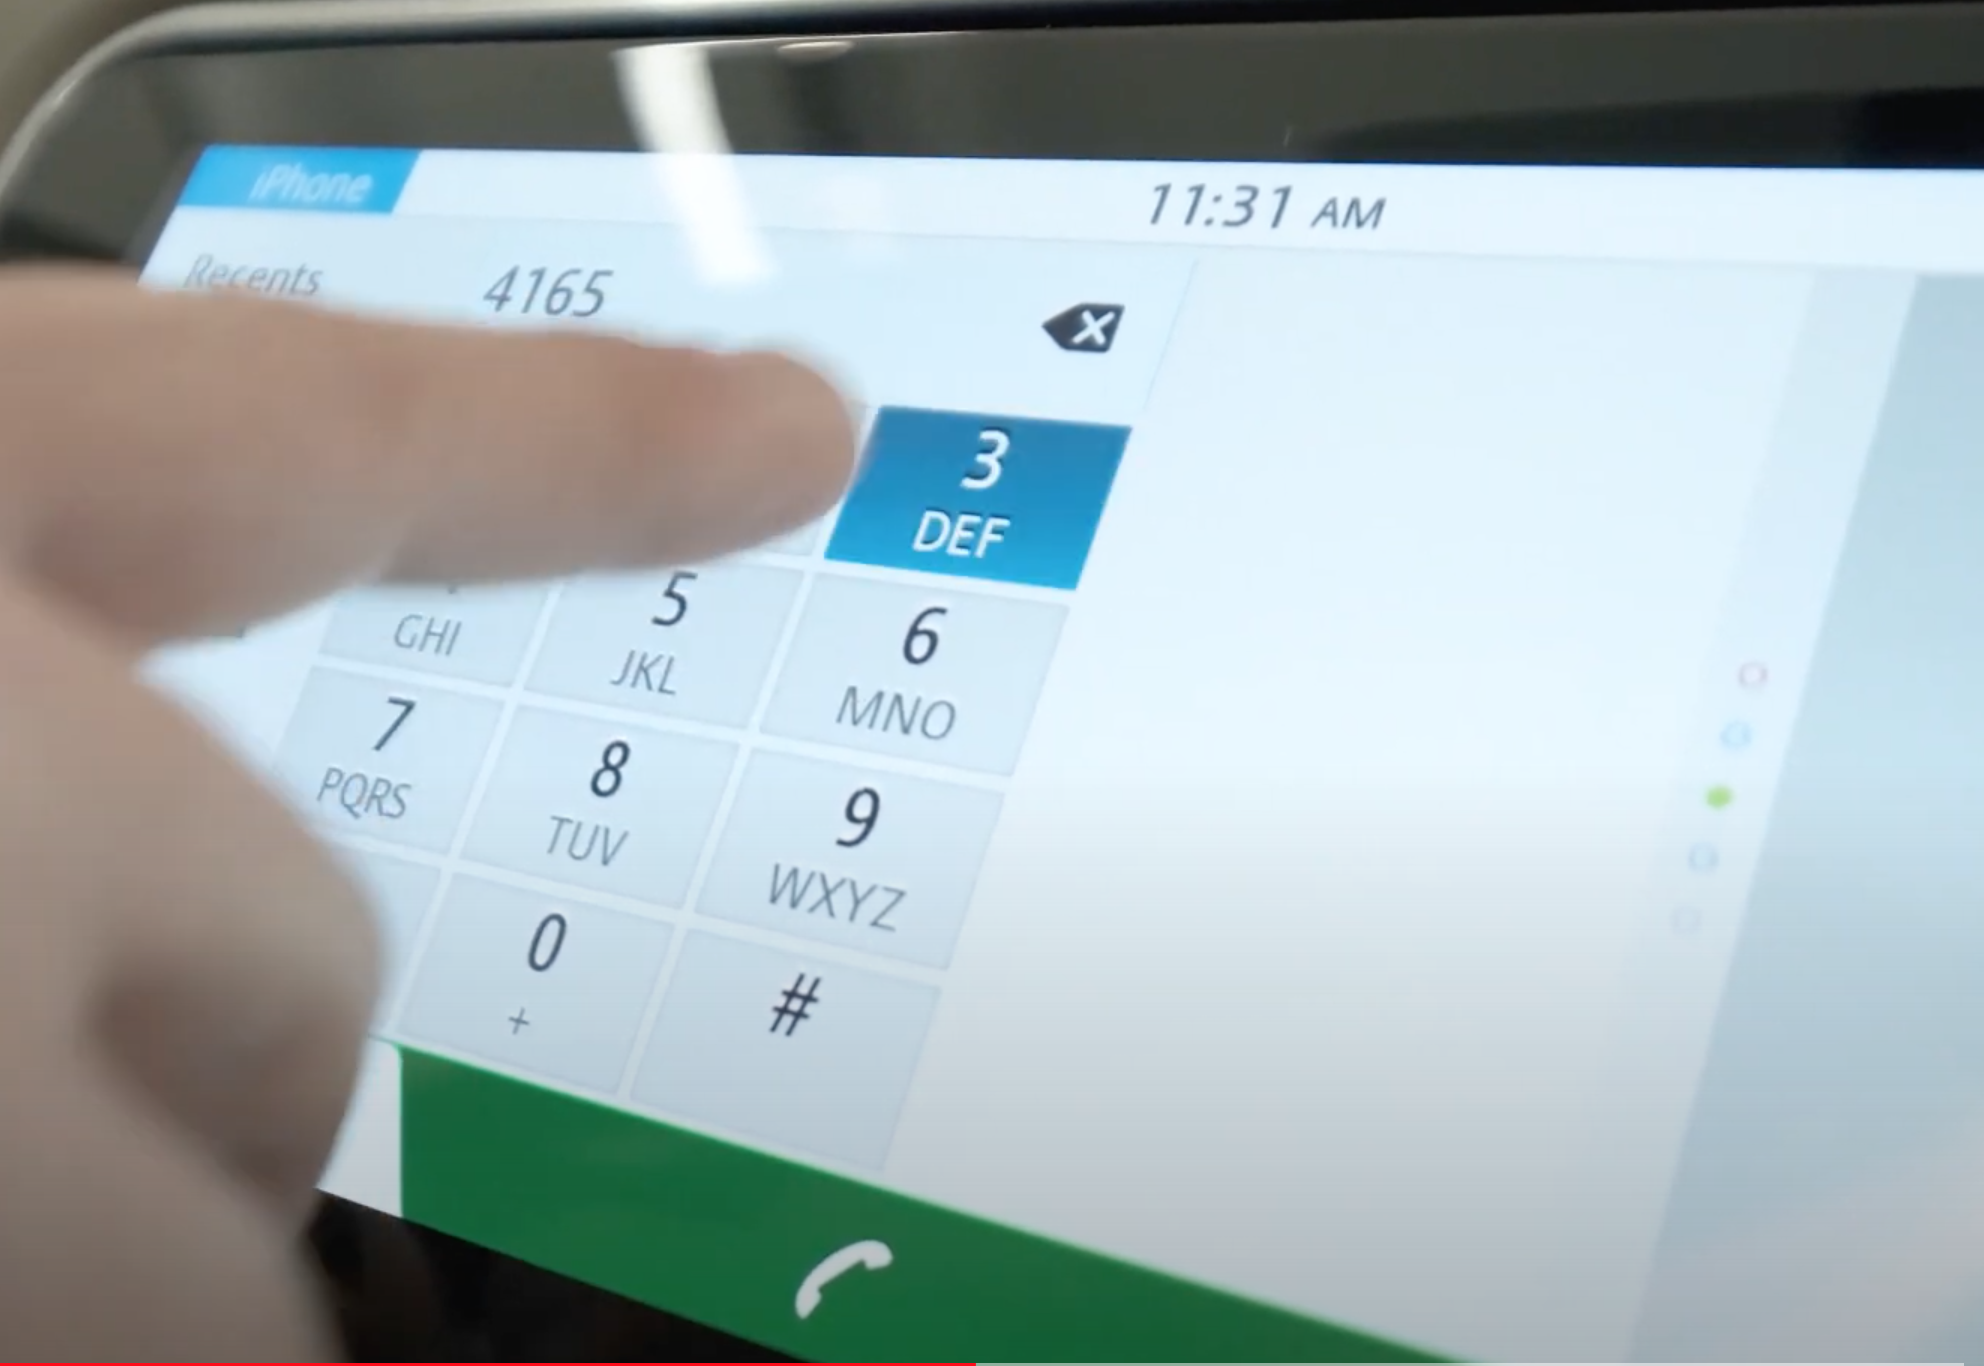 A user entering a phone number on a keypad